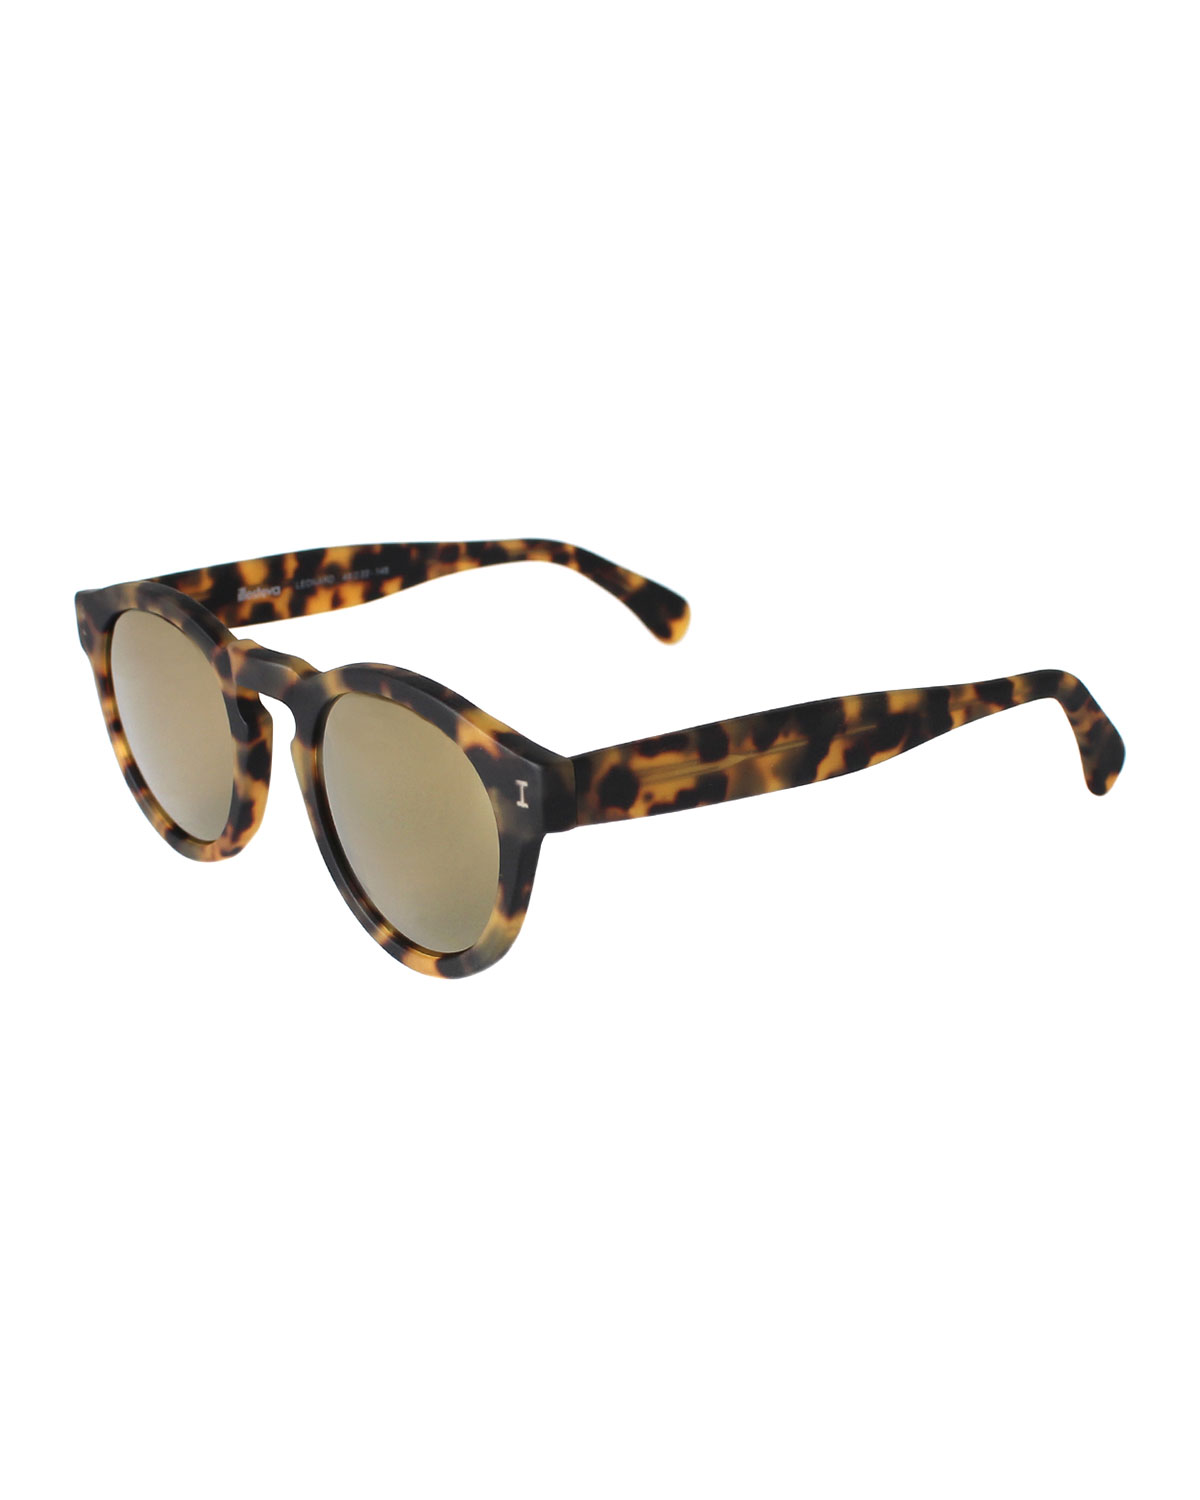 Leonard Round Mirrored Sunglasses, Tortoise/Gold